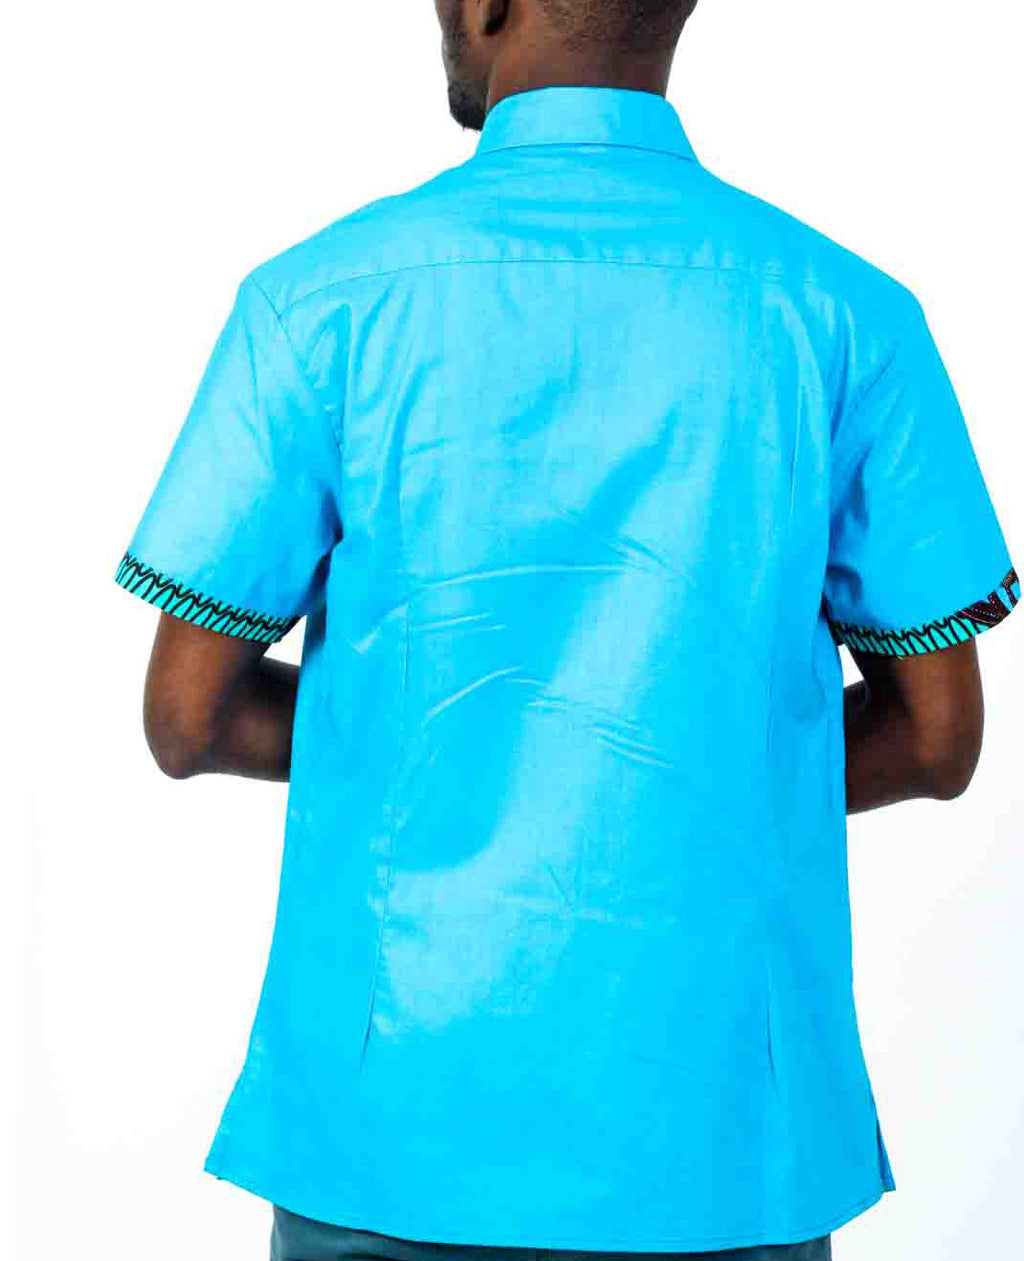 Baby Blue African Print Shirt - OHEMA OHENE AFRICAN INSPIRED FASHION  - 2